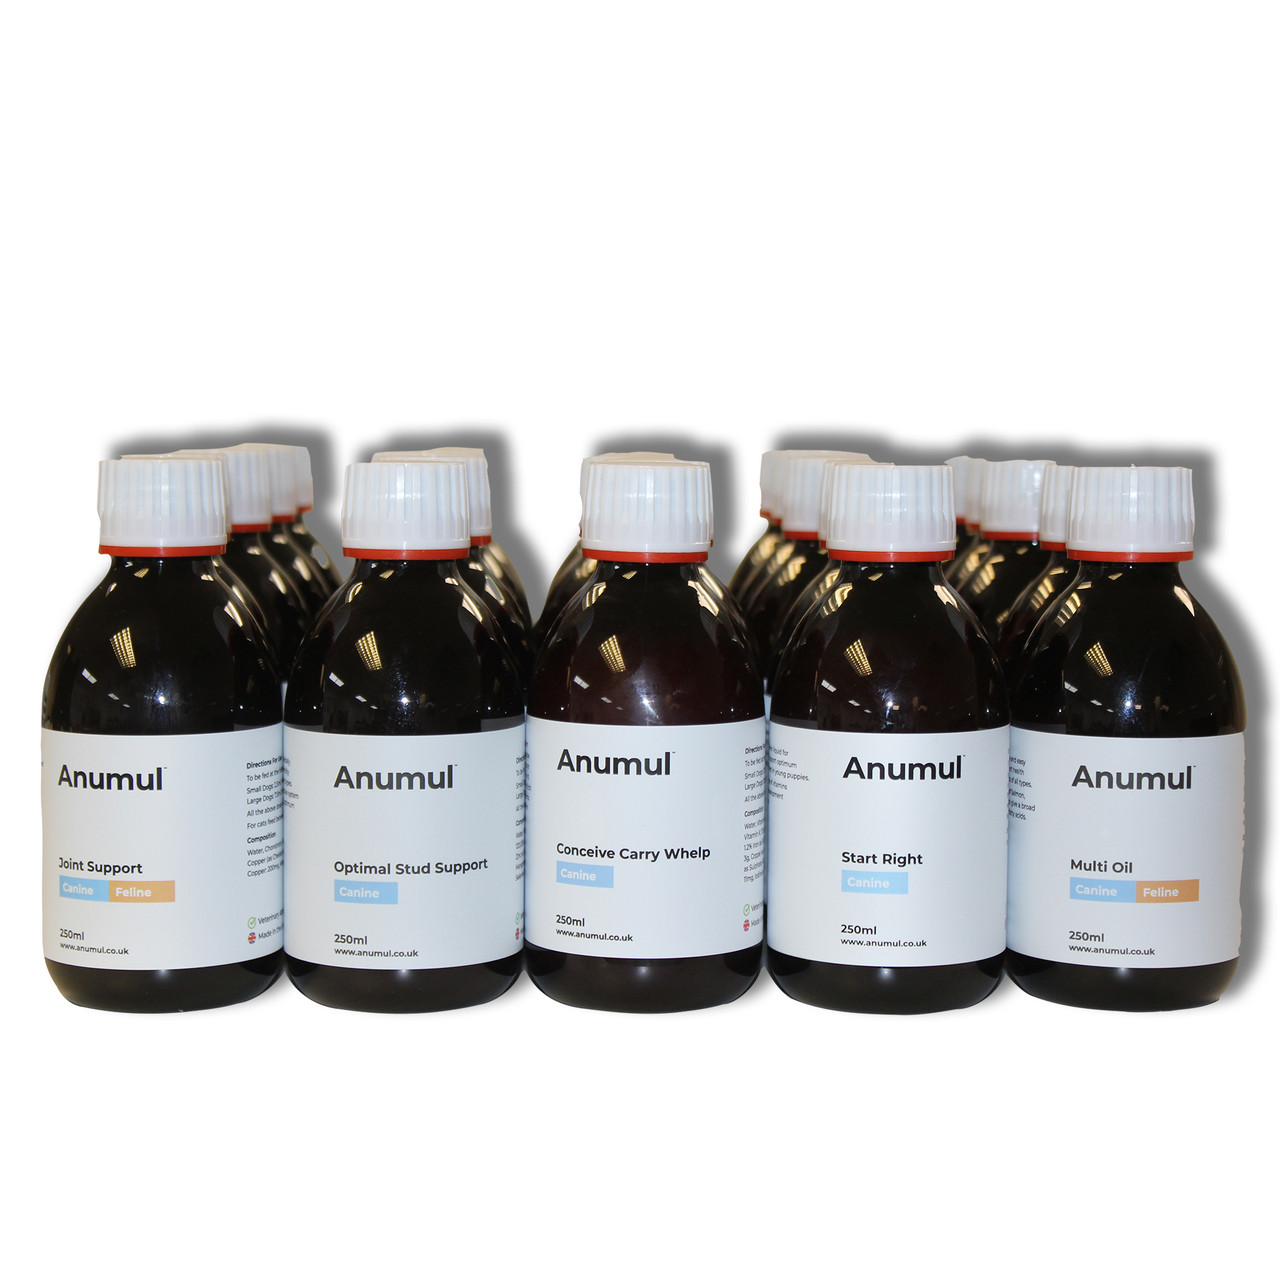 Anumul Conceive Carry Whelp for Pregnant Dogs and Conception 250ml Bottle